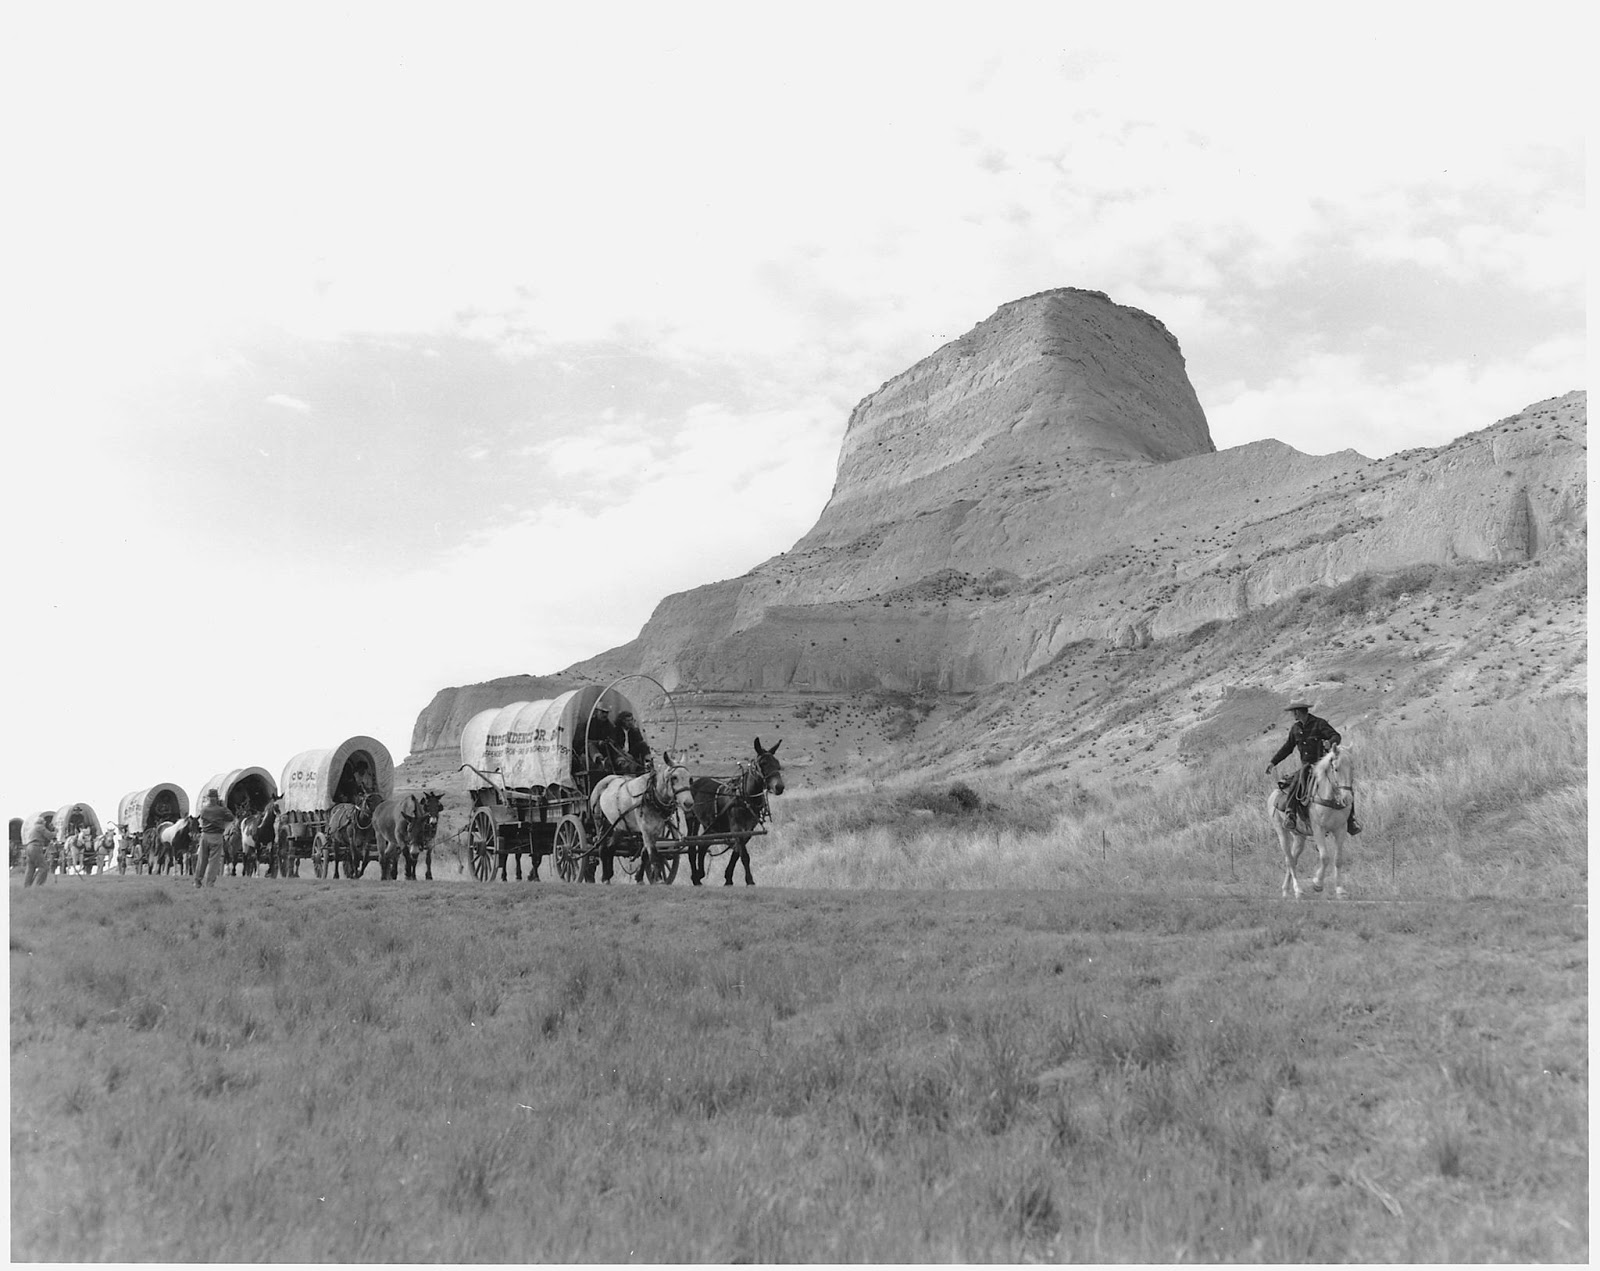 """""""Oregon Trail Reenactment."""" Author unknown, (U.S. National Archives and Records Administration) [Public domain], via Wikimedia Commons"""